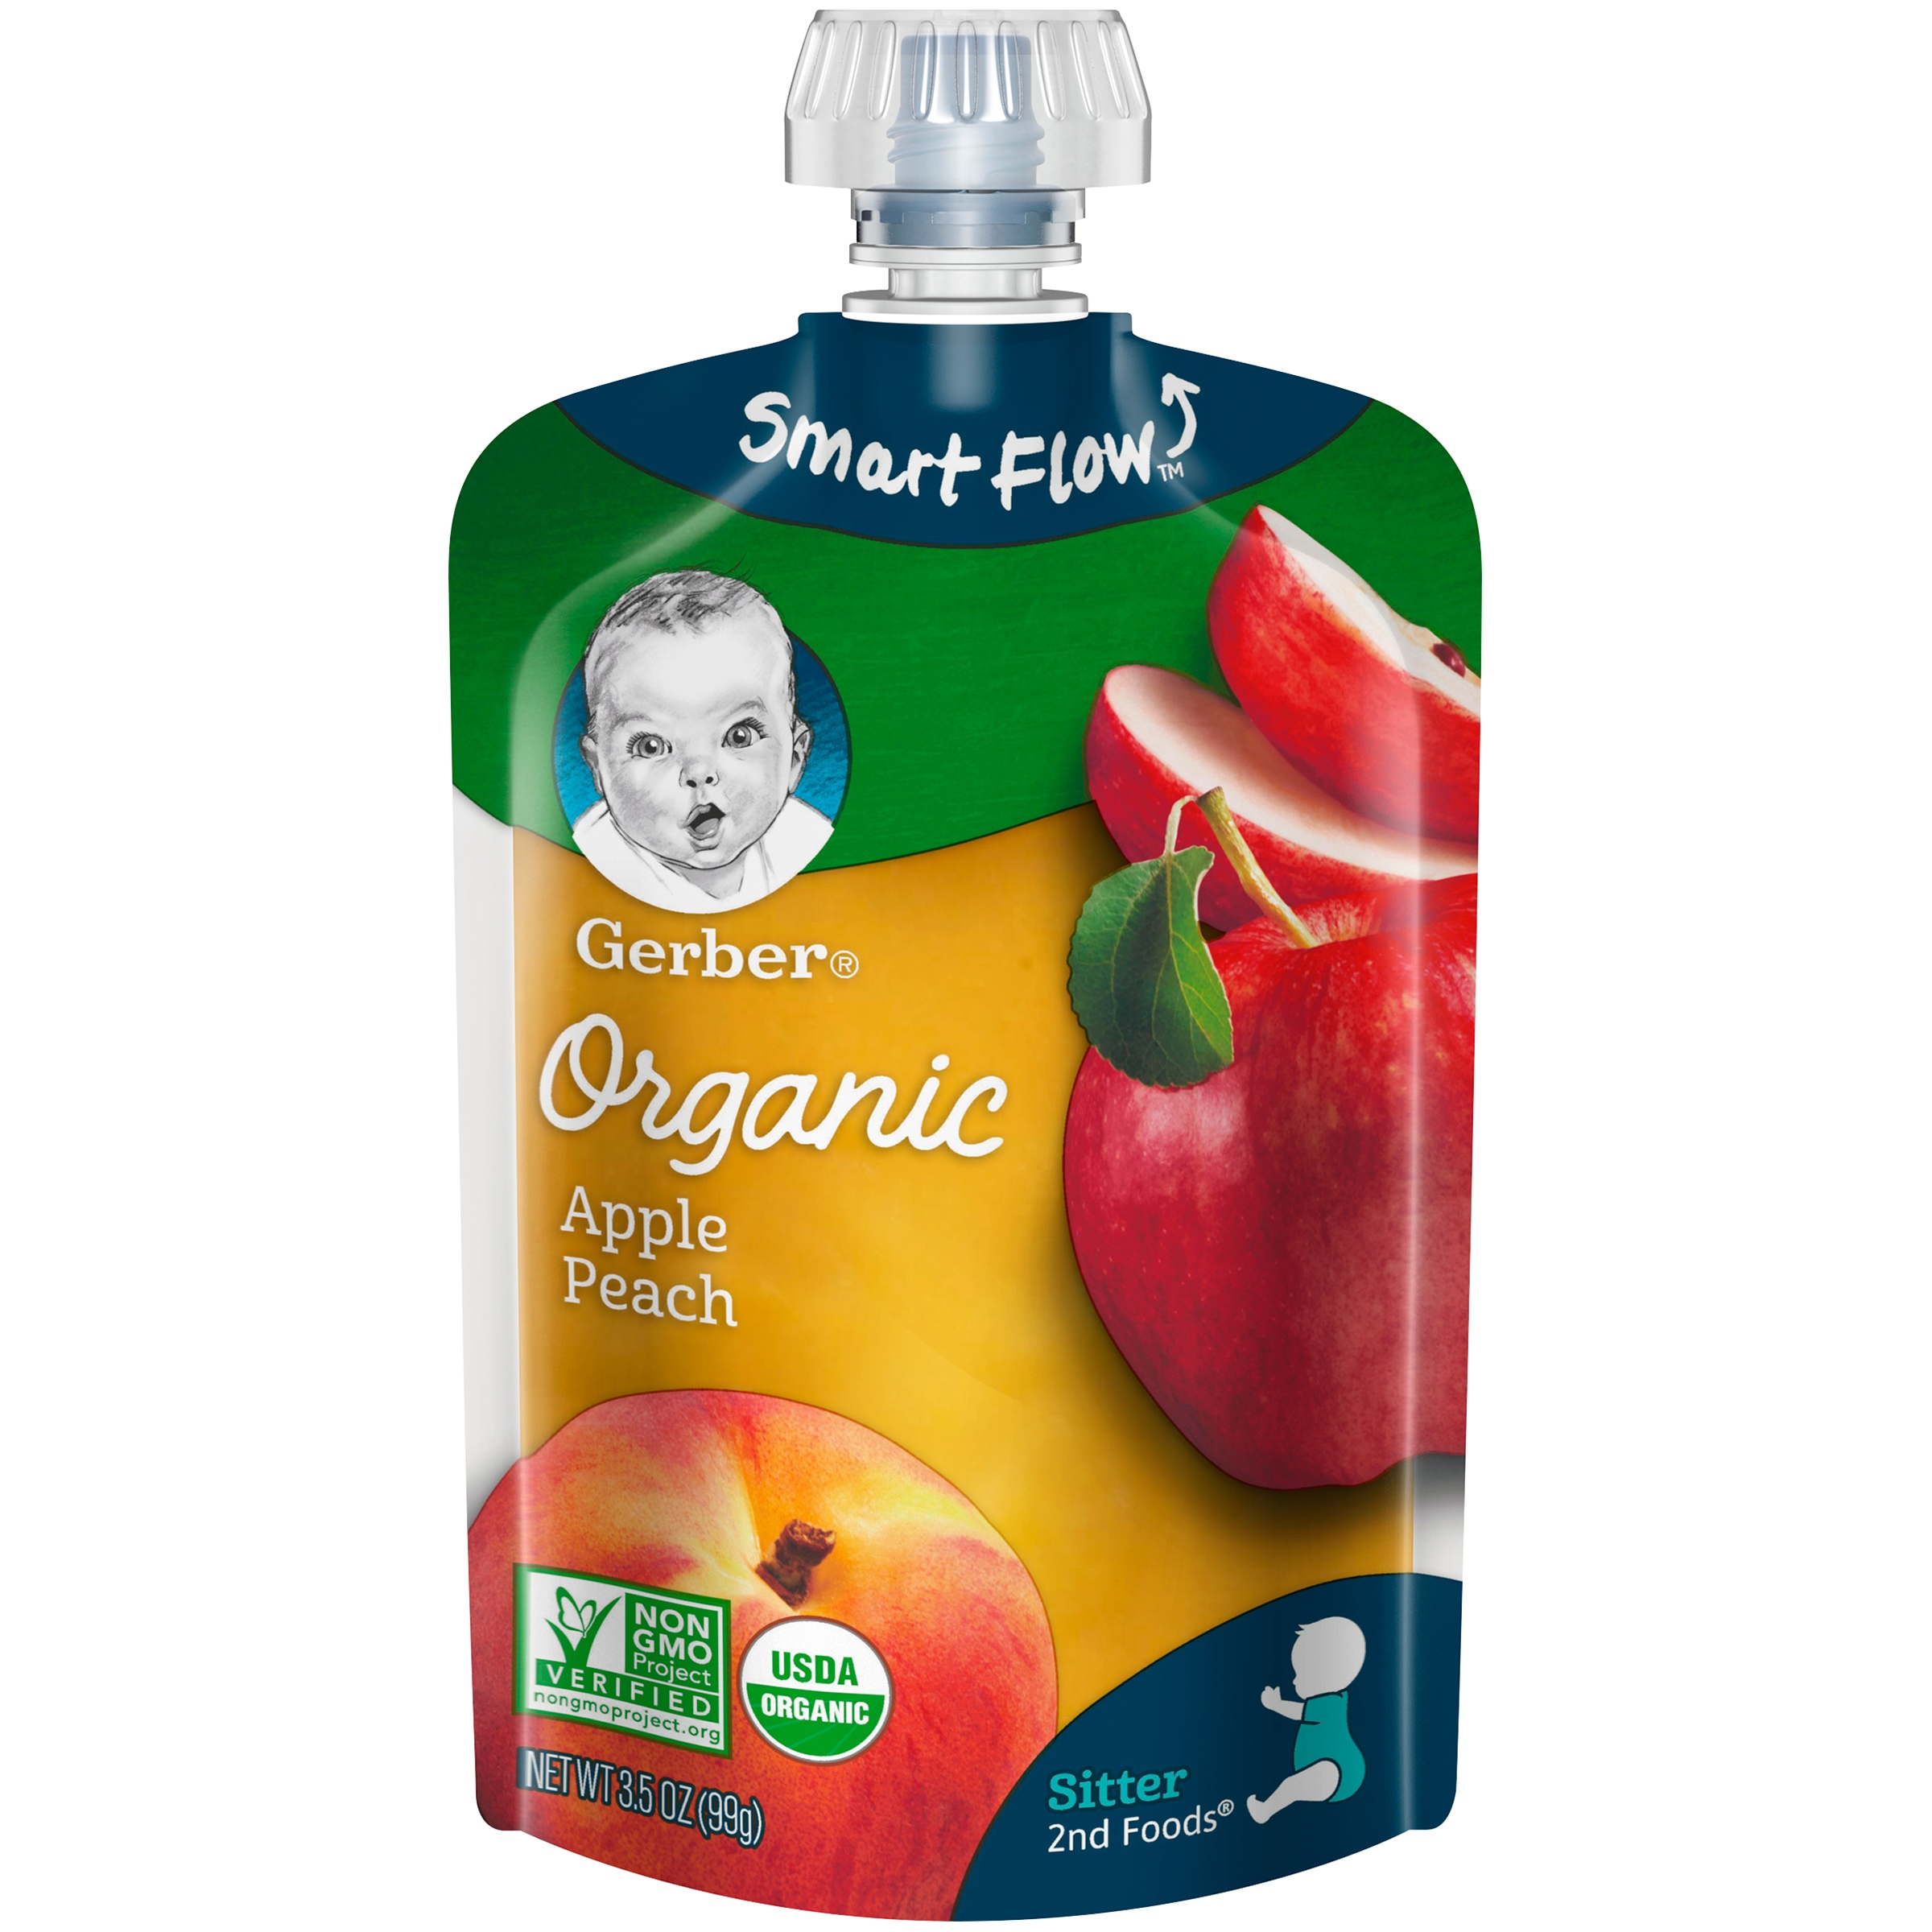 Gerber Organic 2nd Foods Baby Food, Apple Peach, 3.5 oz Pouch (Pack of 12)